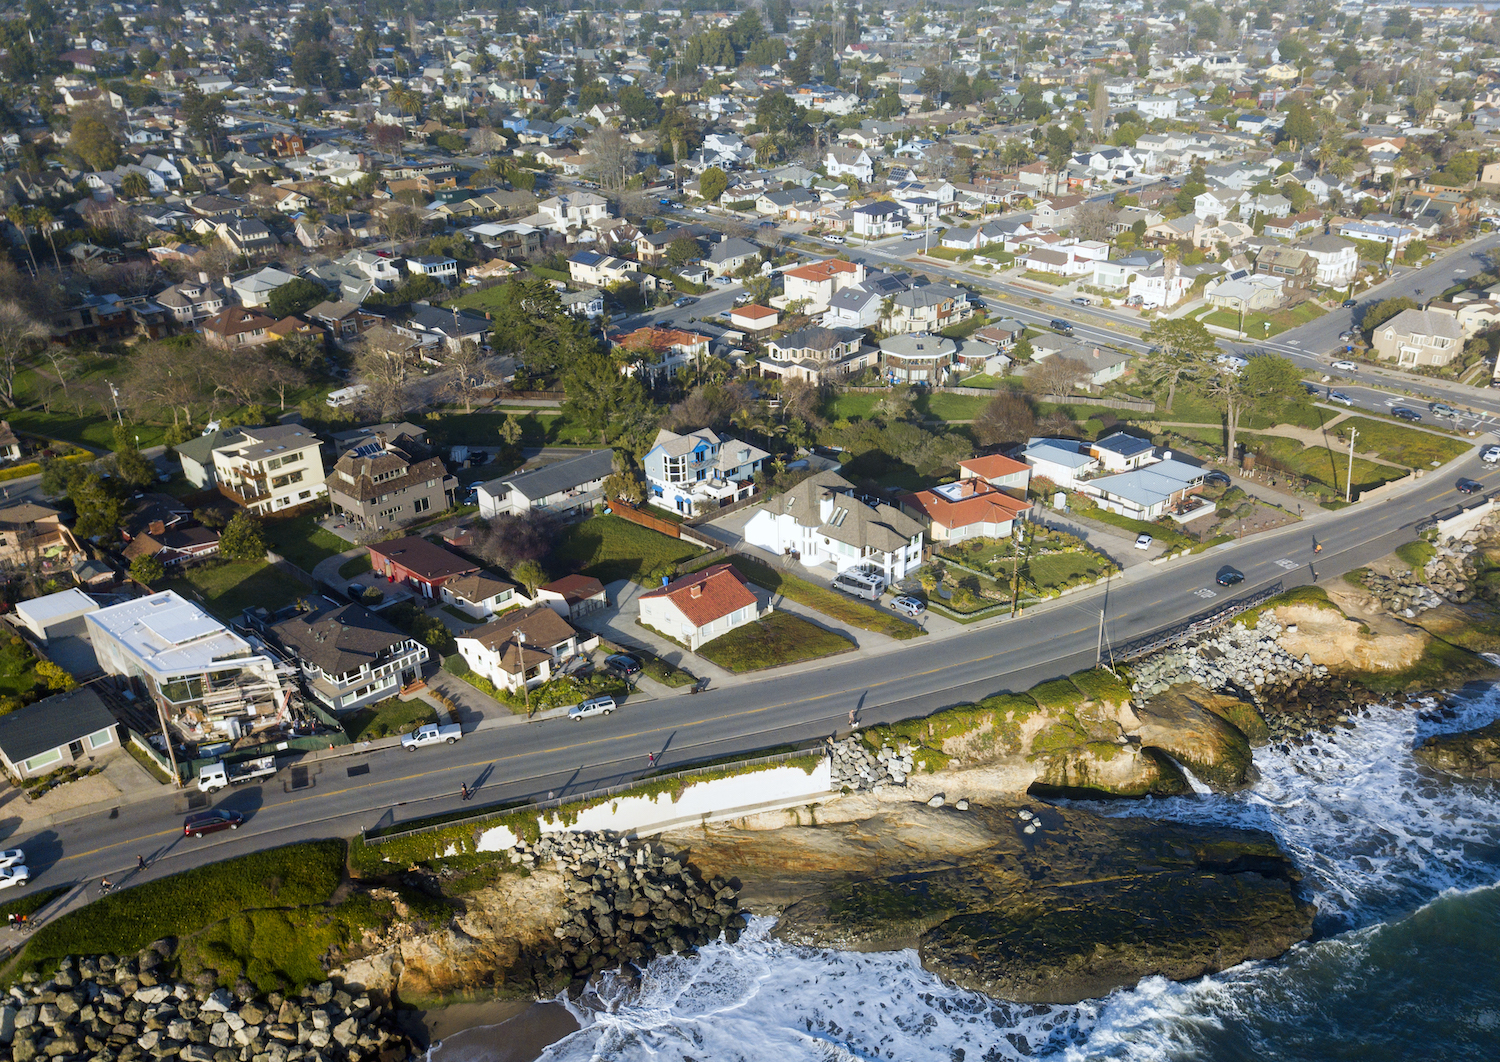 127 bethany curve - ocean view of west cliff drive